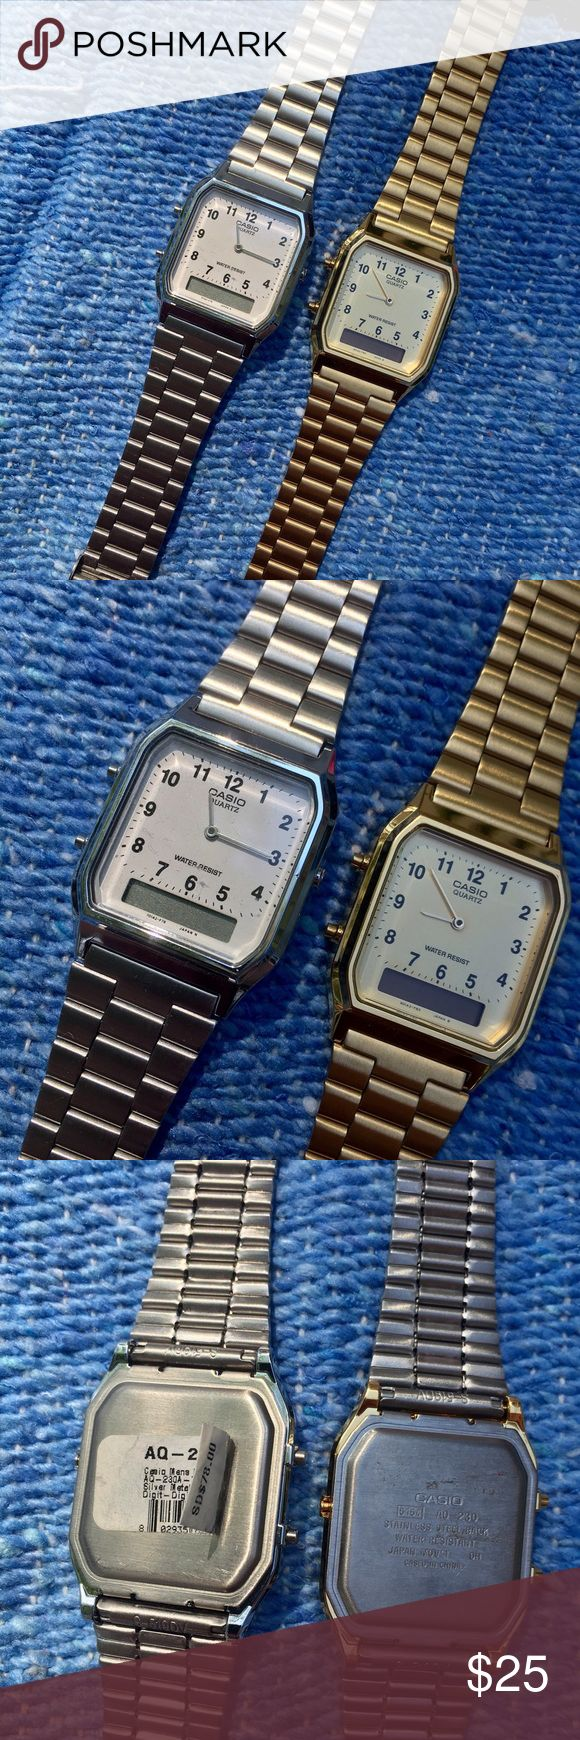 Casio Digital Analog Dual Time Wrist Watch Casio Digital Analog dual time wrist watch in GOLD or SILVER. Both are deadstock from American Apparel. One still has remnants of AA sticker tag. In great unworn condition. Batteries have expired but are cheap to replace. May have very minor surface scratches from storage. PRICE REFLECTS ONE WATCH! Tbh so cute I wanna keep them so price is v firm. 😭  American Apparel ; casio ; retro ; gold ; silver ; watch American Apparel Accessories Watches